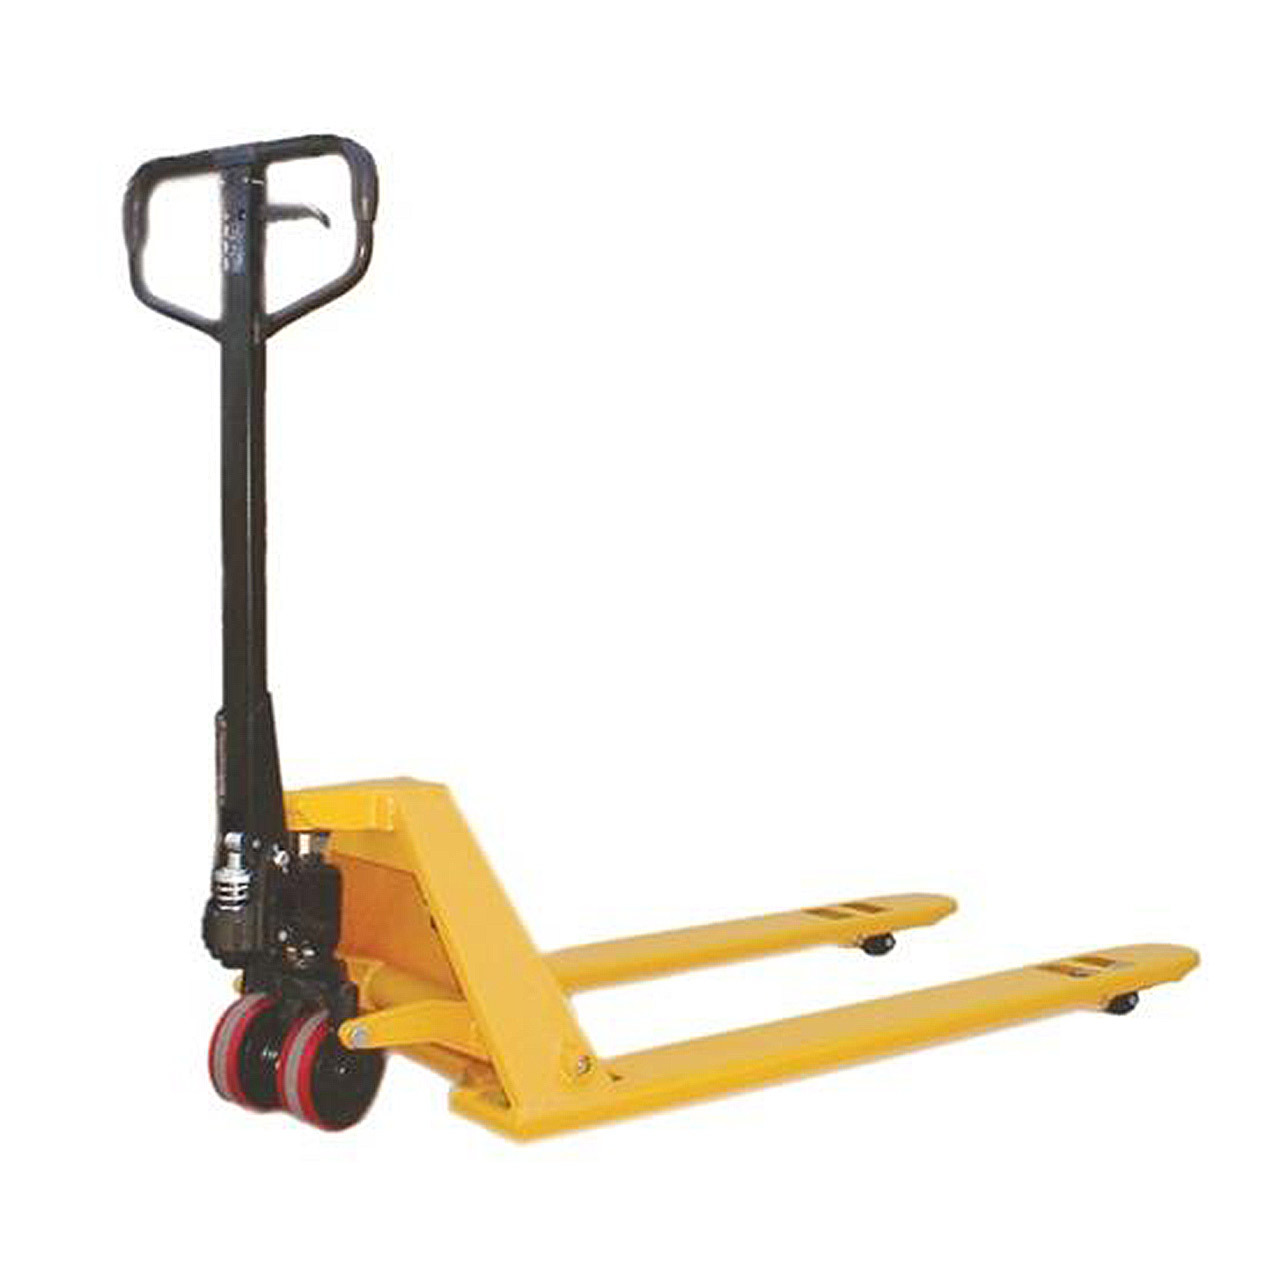 This low profile pallet jack from Atlas